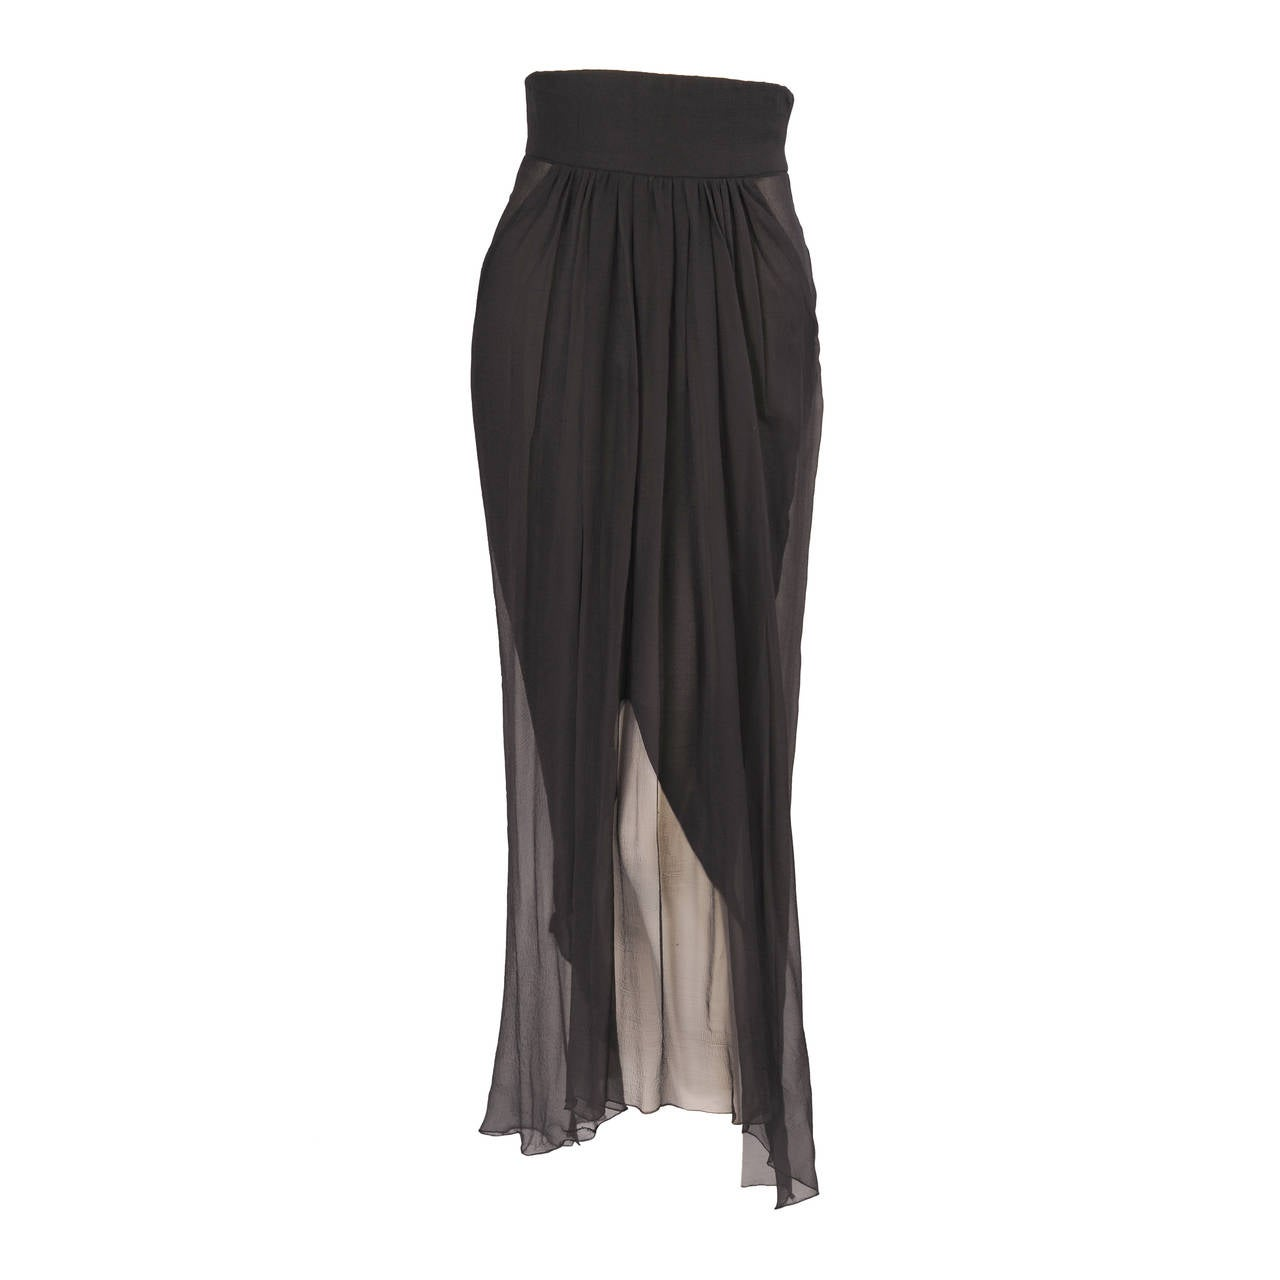 Yves Saint Laurent Haute Couture Sheer Silk Chiffon Skirt 1